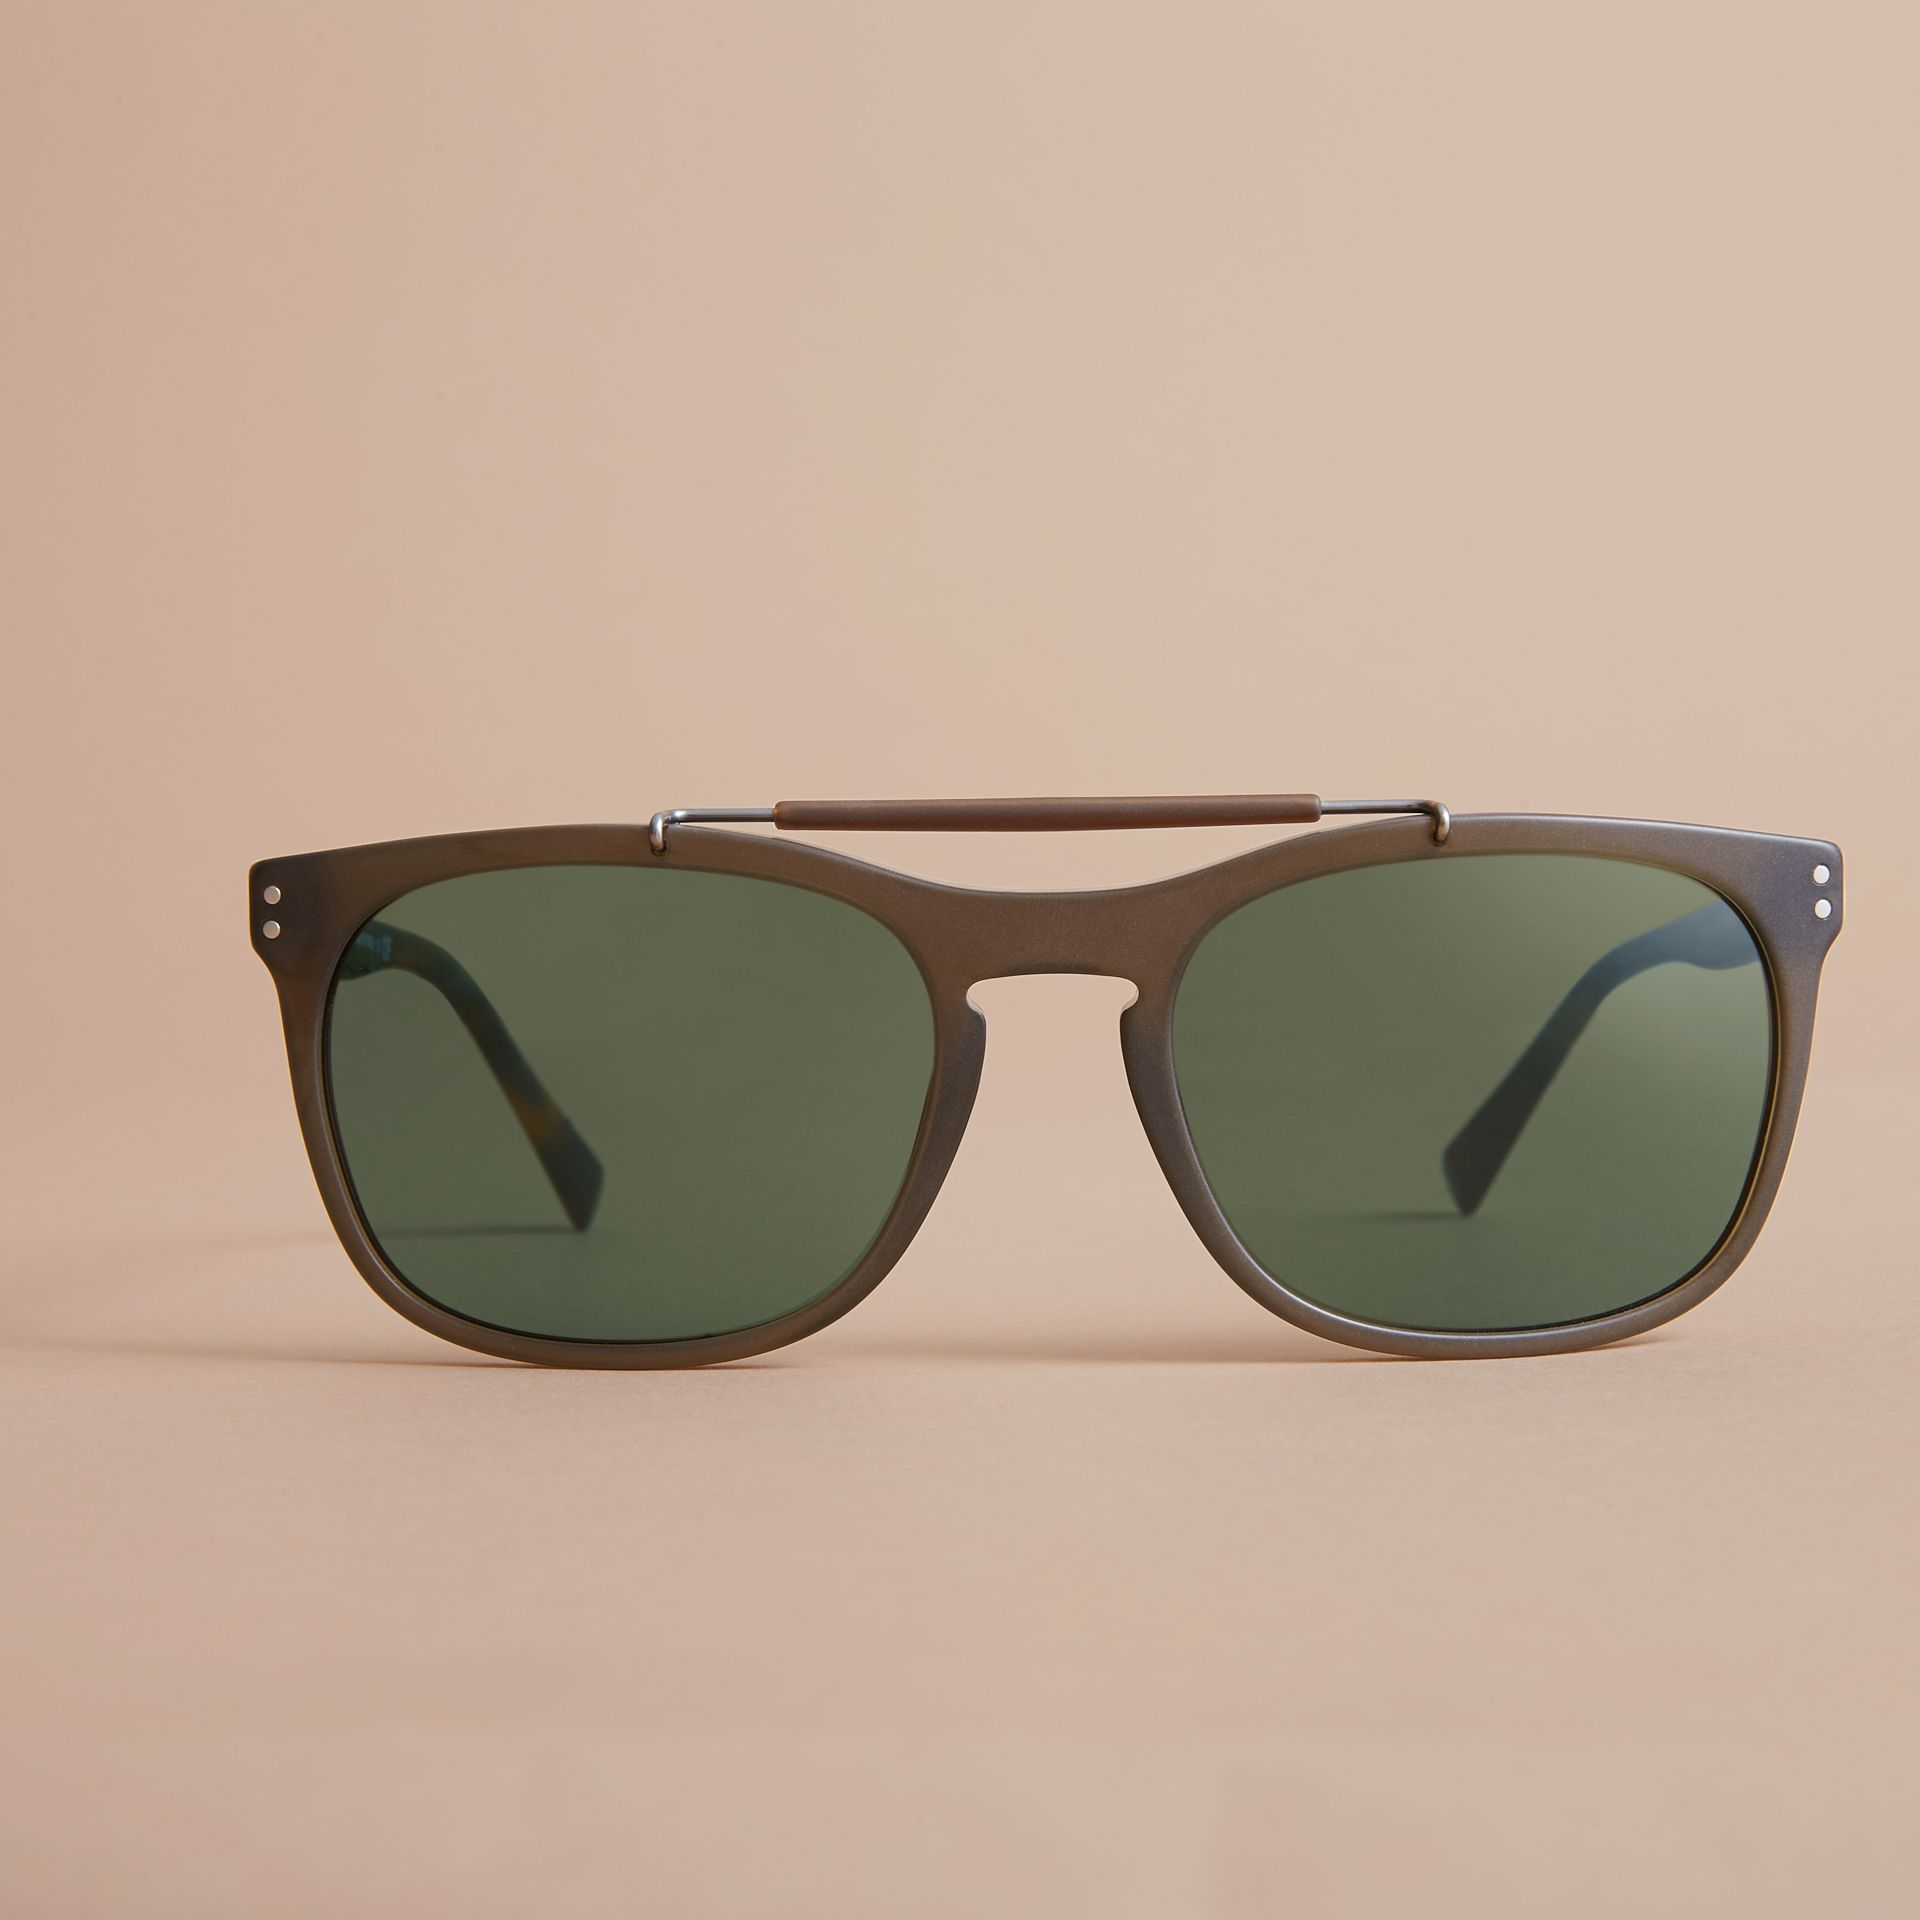 Top Bar Square Frame Sunglasses in Olive - Men | Burberry - gallery image 3